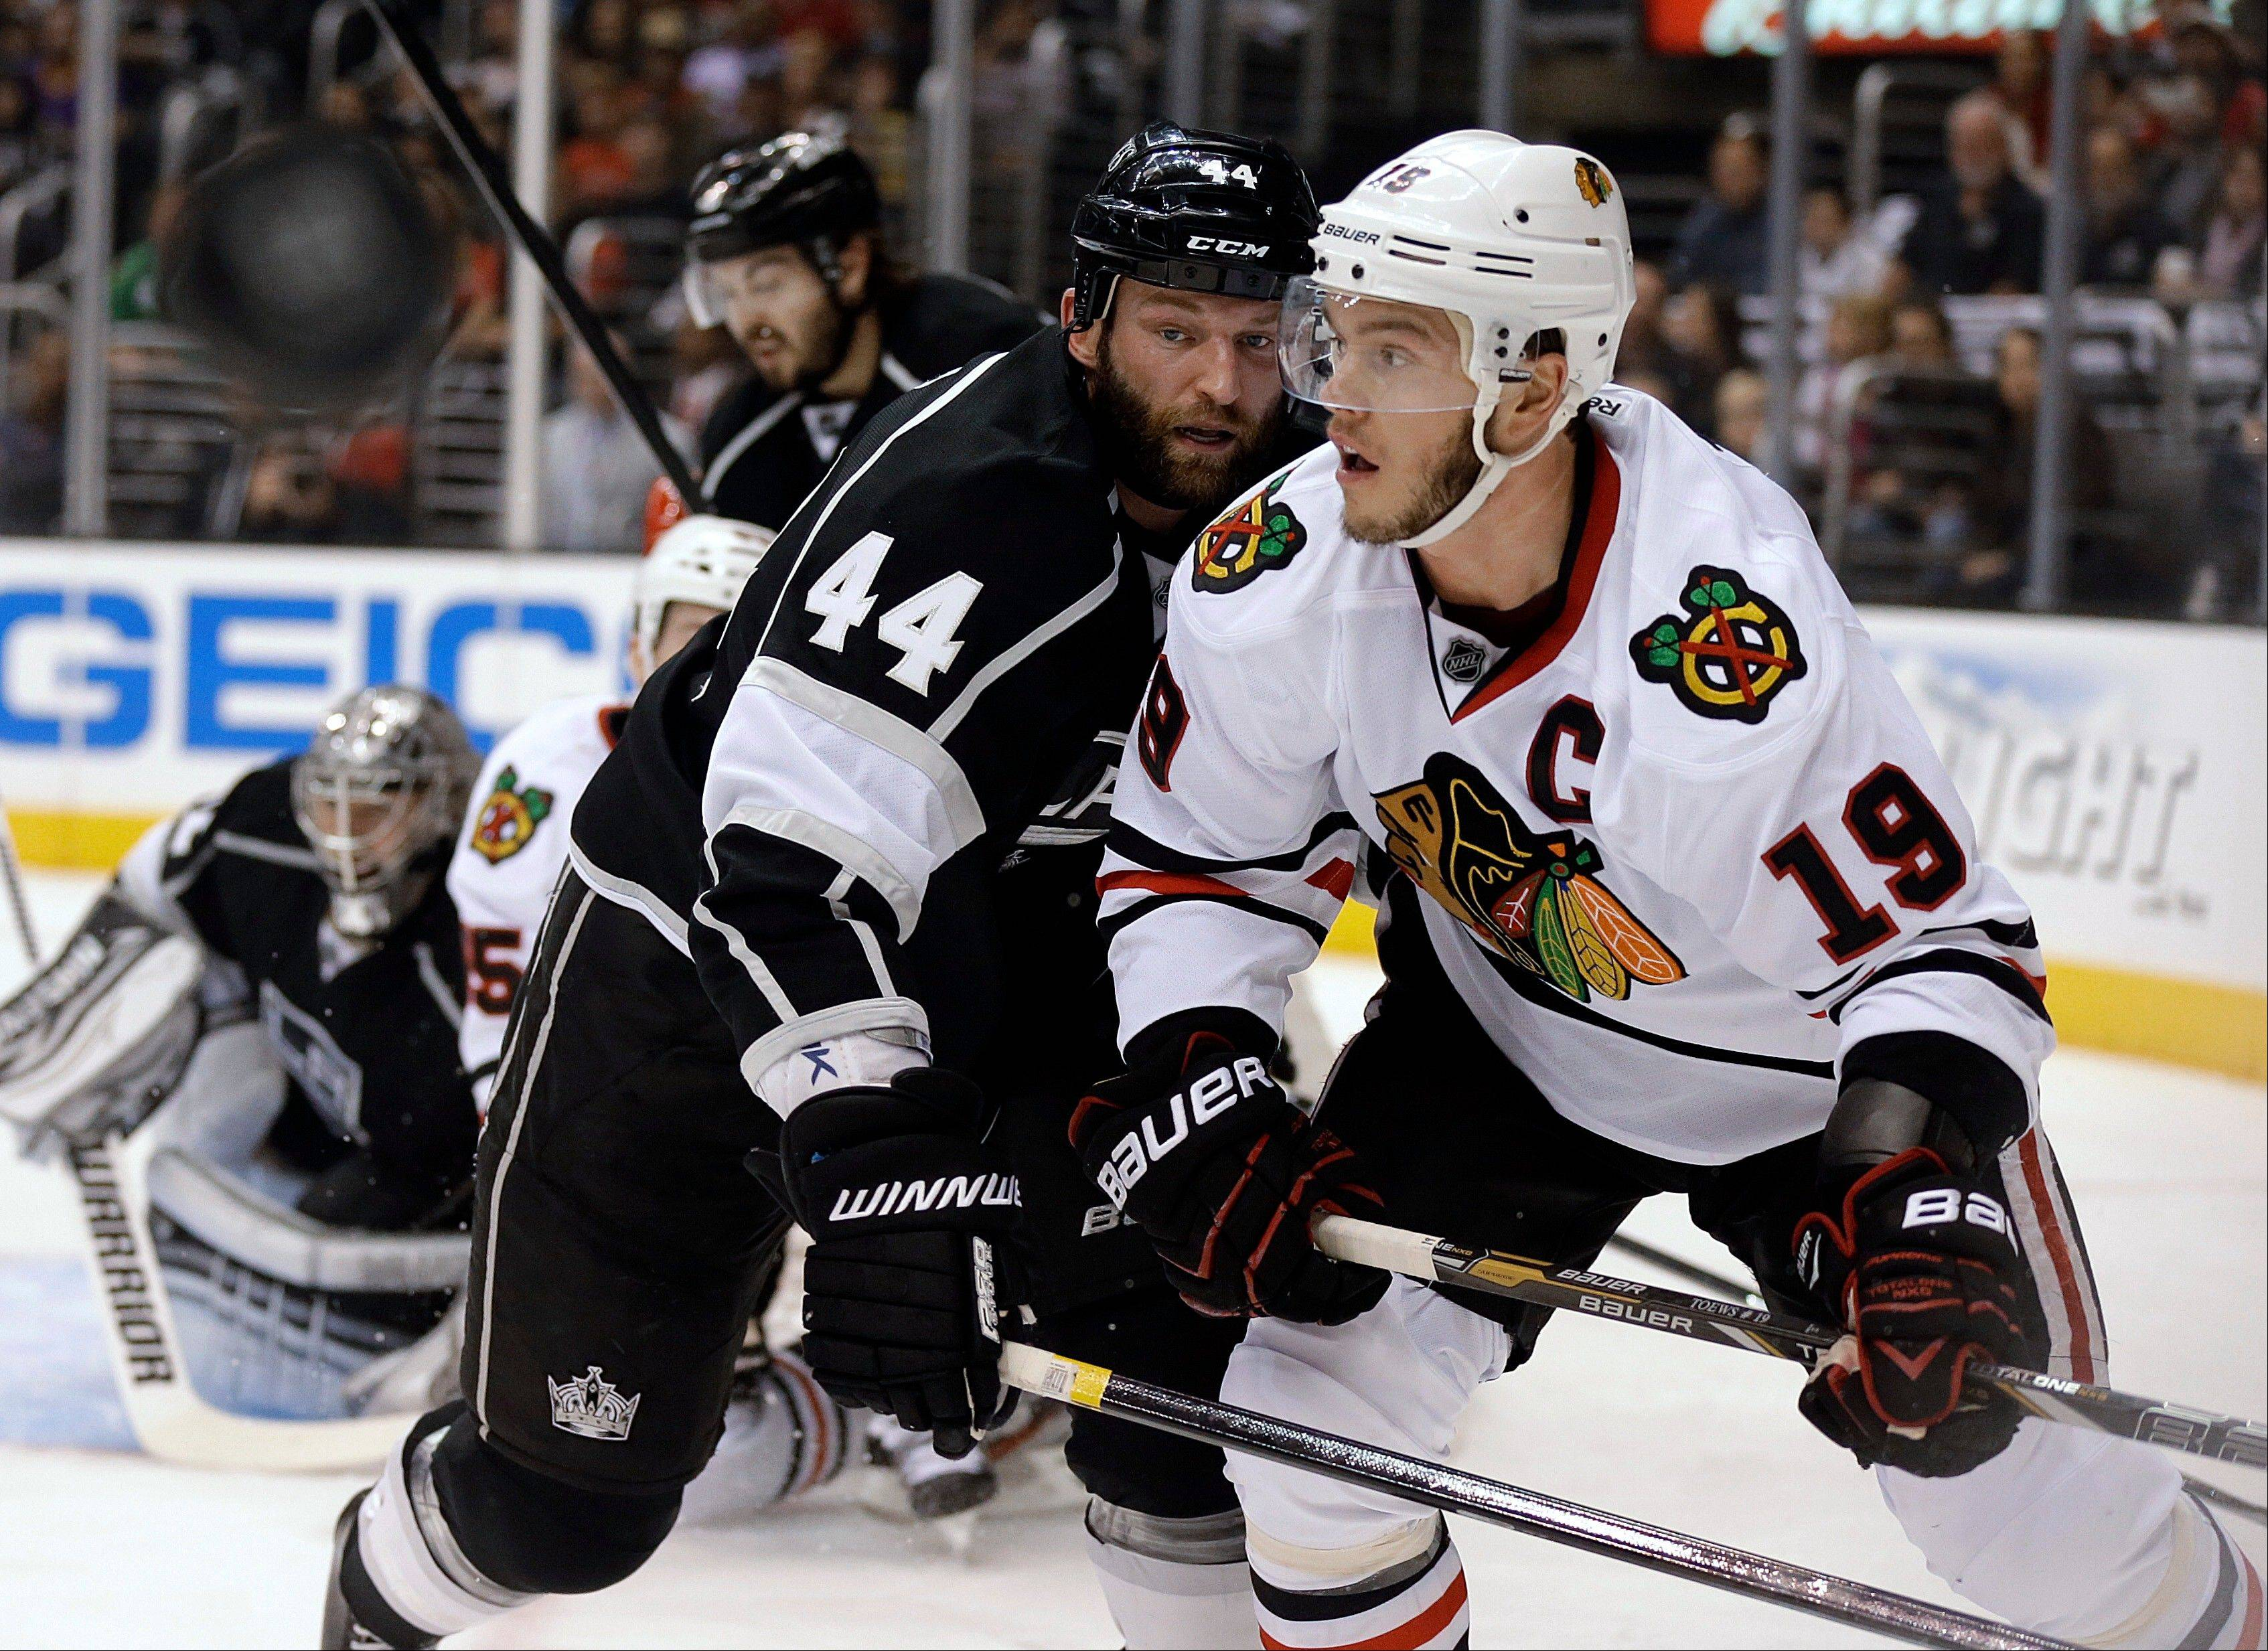 Los Angeles Kings defenseman Robyn Regehr (44) and Chicago Blackhawks center Jonathan Toews (19) work near the Kings goal during the first period of Game 4 of the NHL hockey Stanley Cup playoffs Western Conference finals, in Los Angeles on Thursday, June 6, 2013.